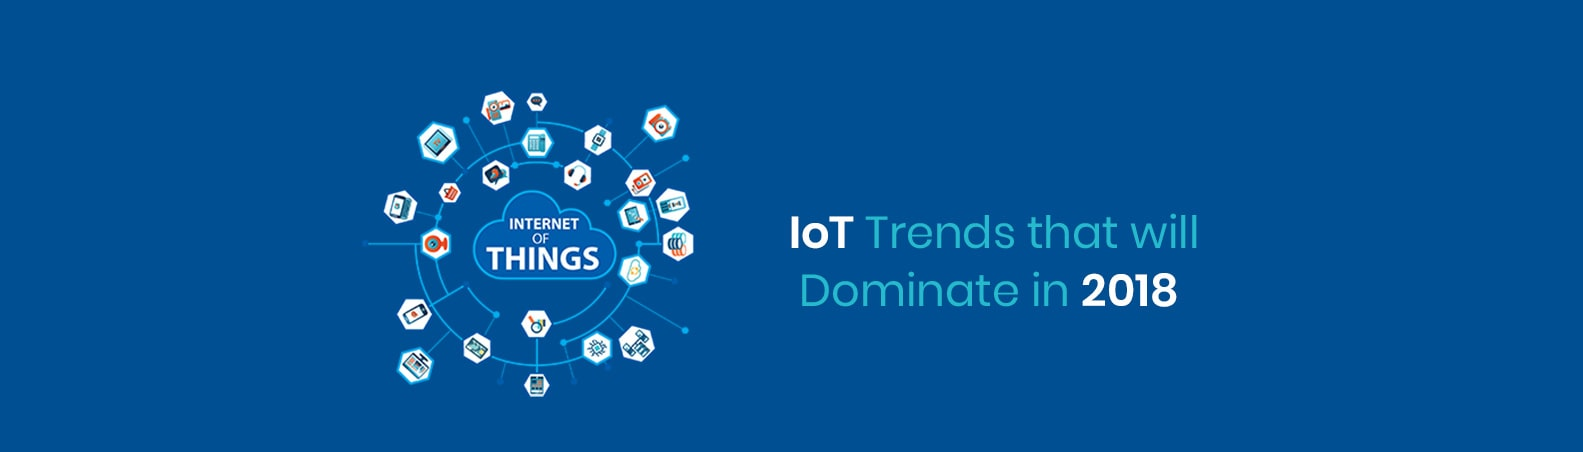 Top 5 IoT Technology Trends | IoT Trends that Will Dominate 2018